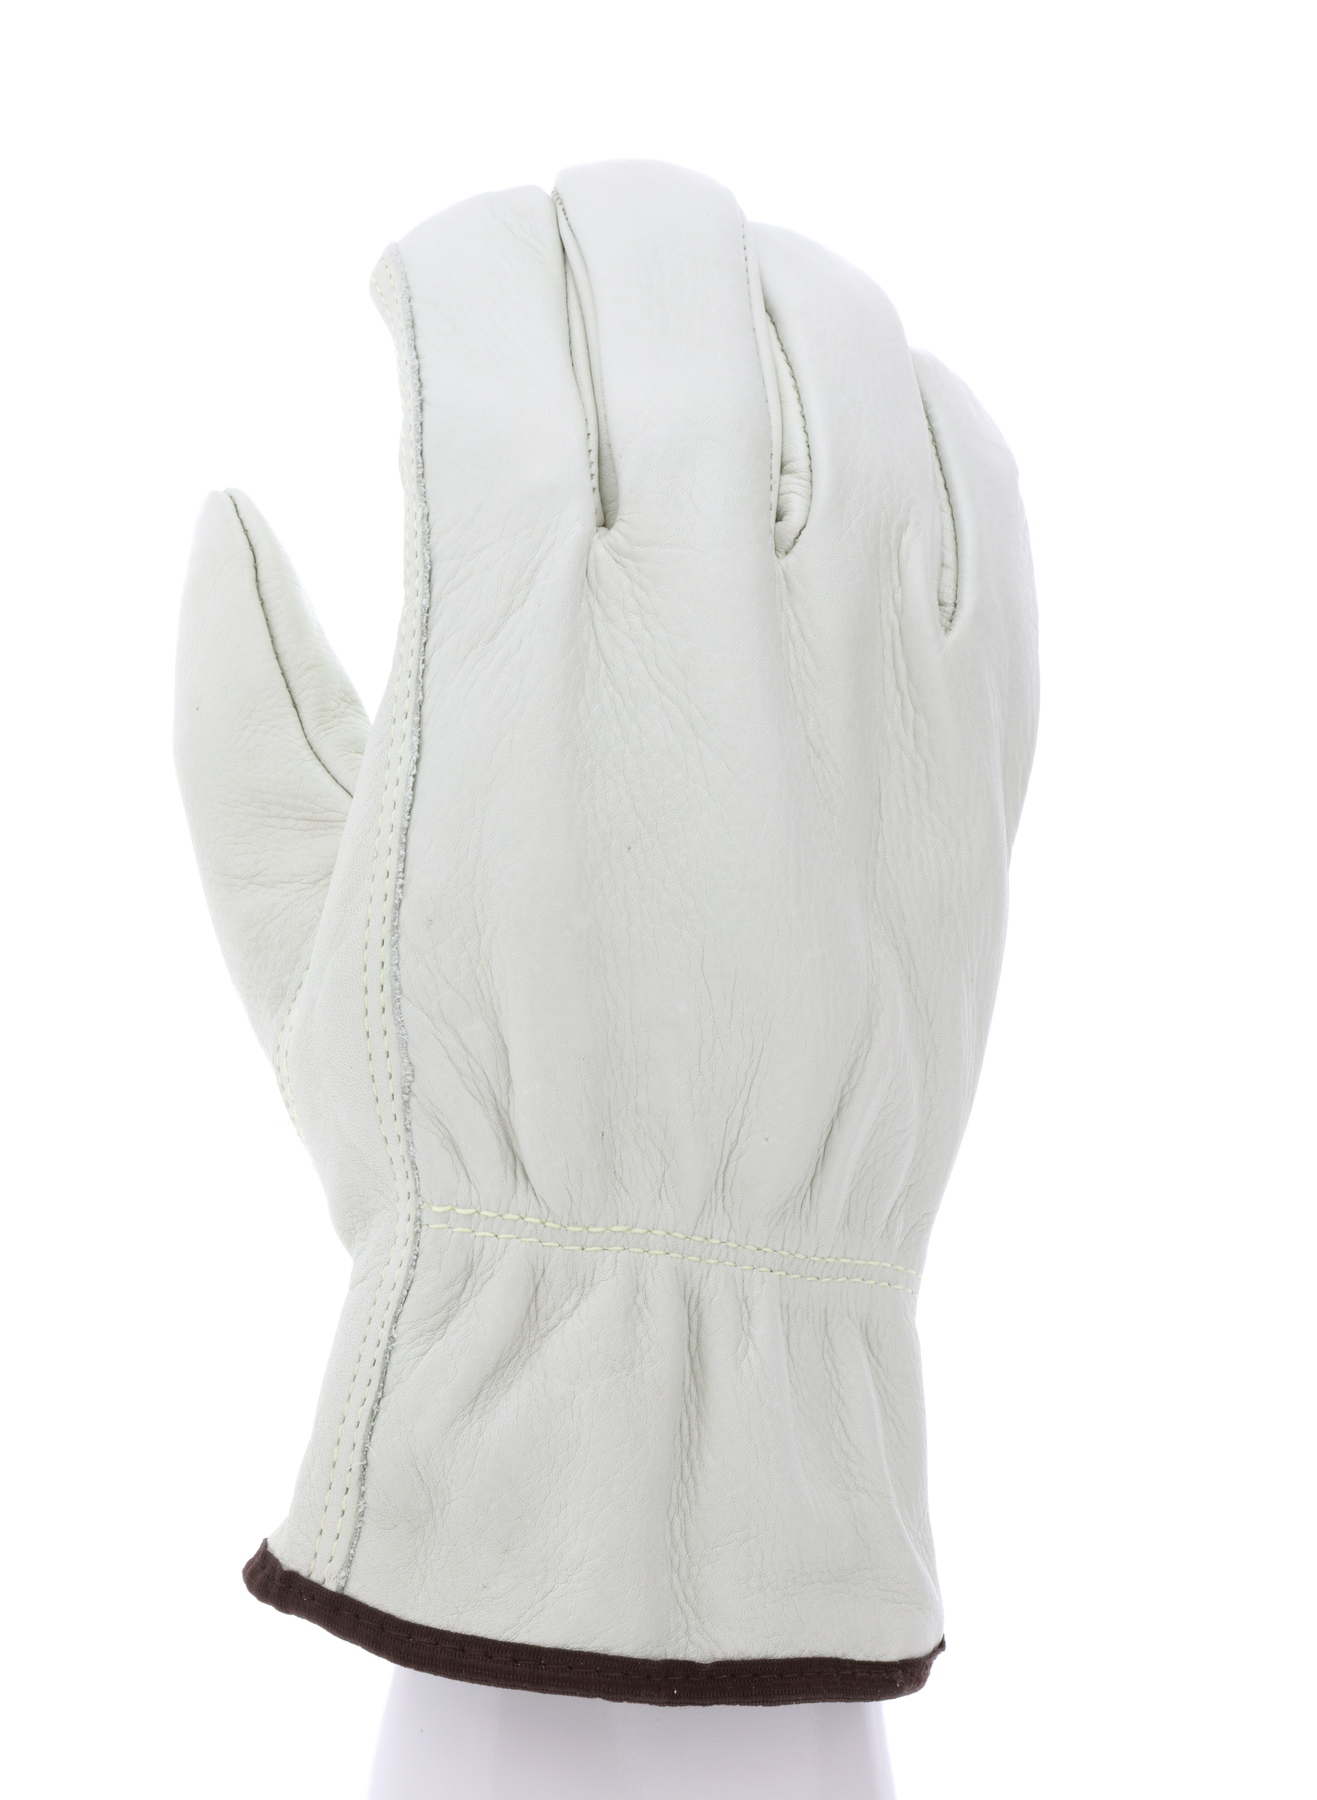 Insulated Leather Driving Glove #32801